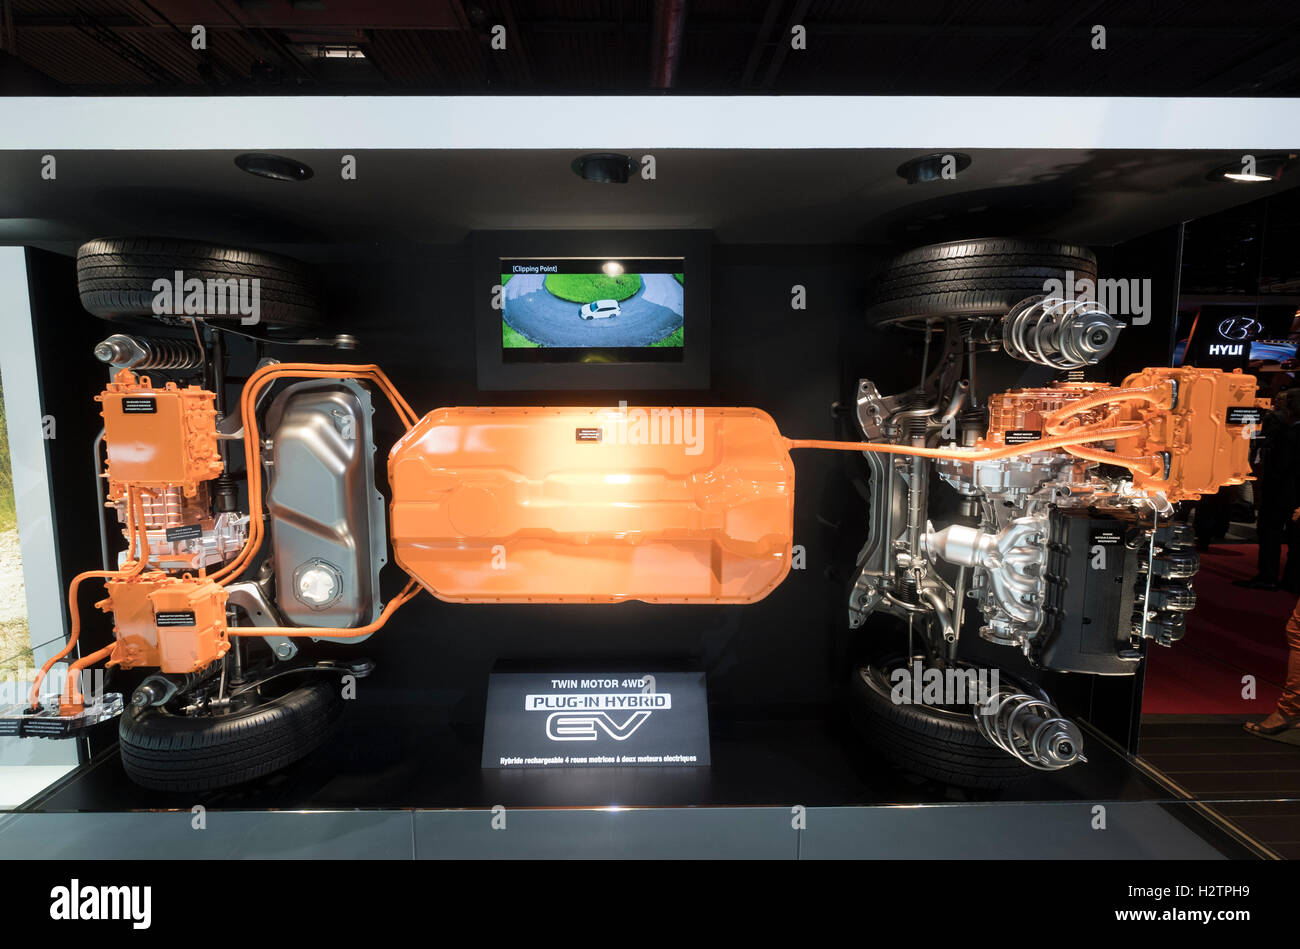 View of Mitsubishi EV plug-in hybrid crossover chassis and powertrain with twin motor 4WD for Outlander at Paris - Stock Image